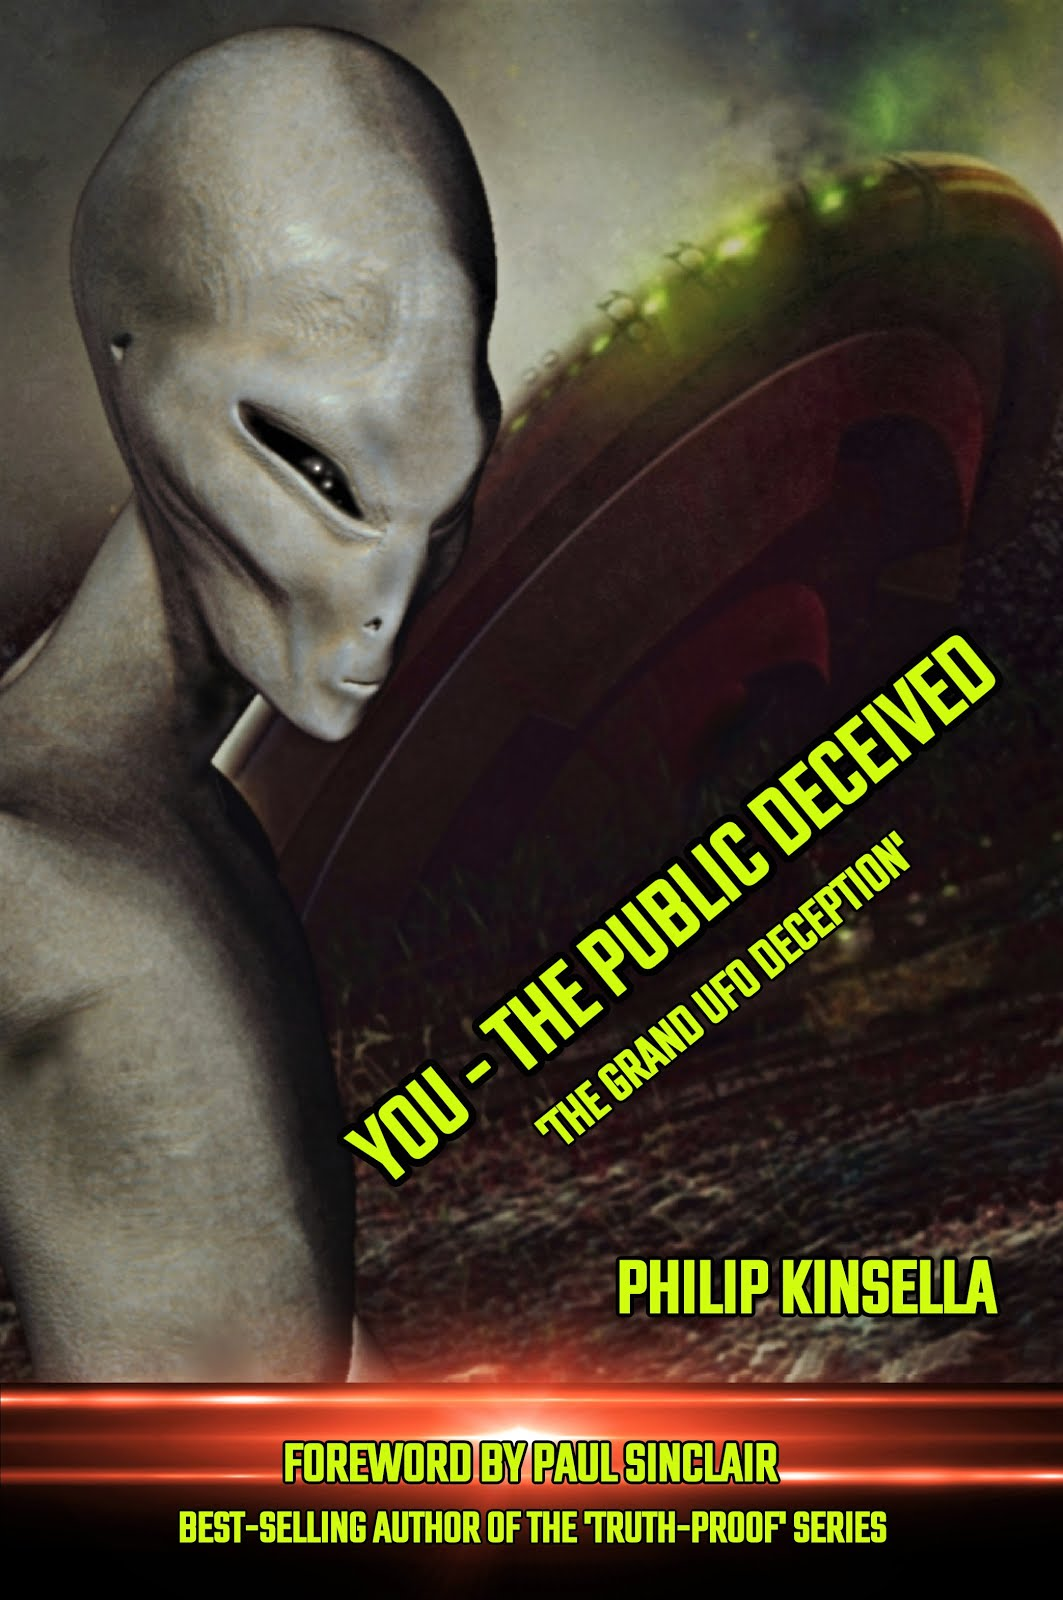 YOU - THE PUBLIC DECEIVED: 'The Grand UFO Deception'